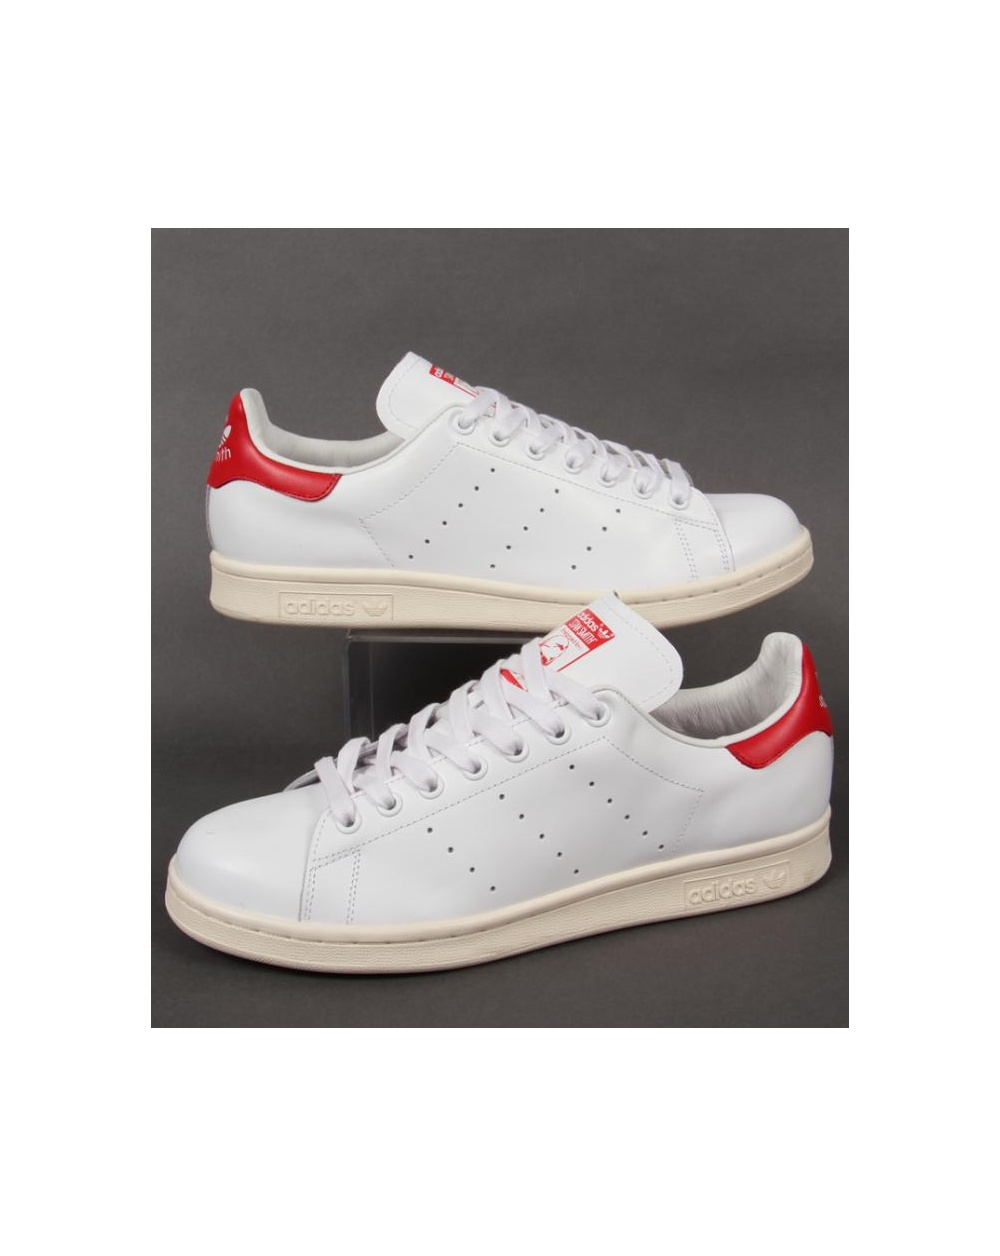 adidas originals white and red stan smith trainers